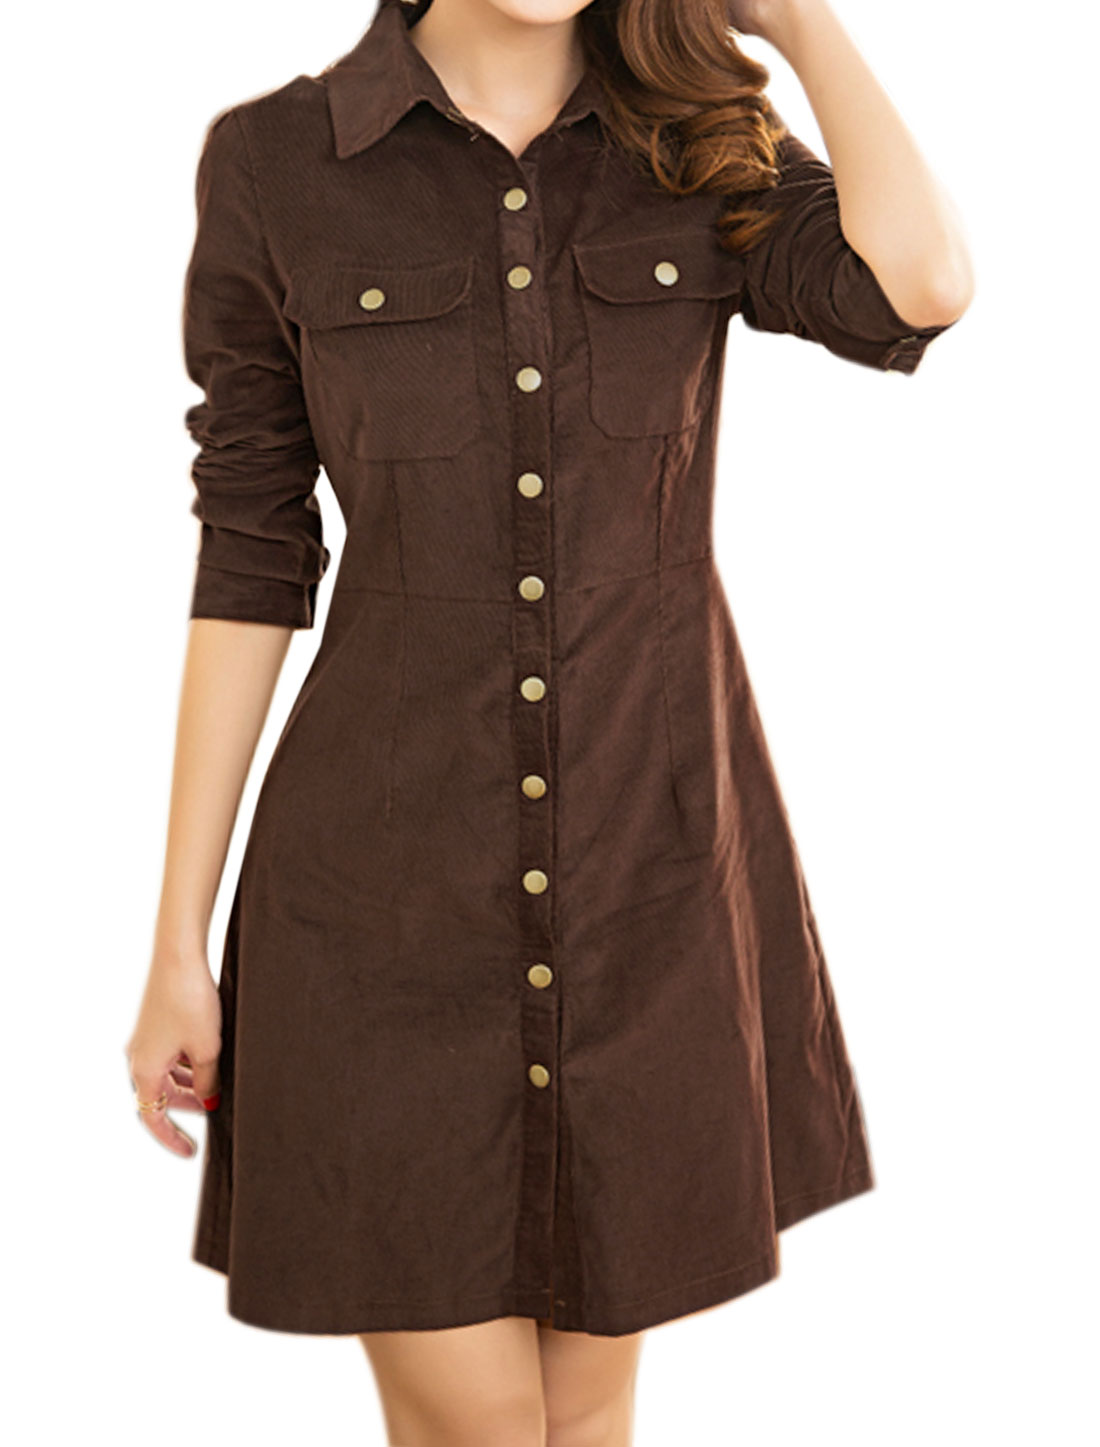 Allegra K Women Snap Button Flap Pockets Slim Fit Corduroy Shirt